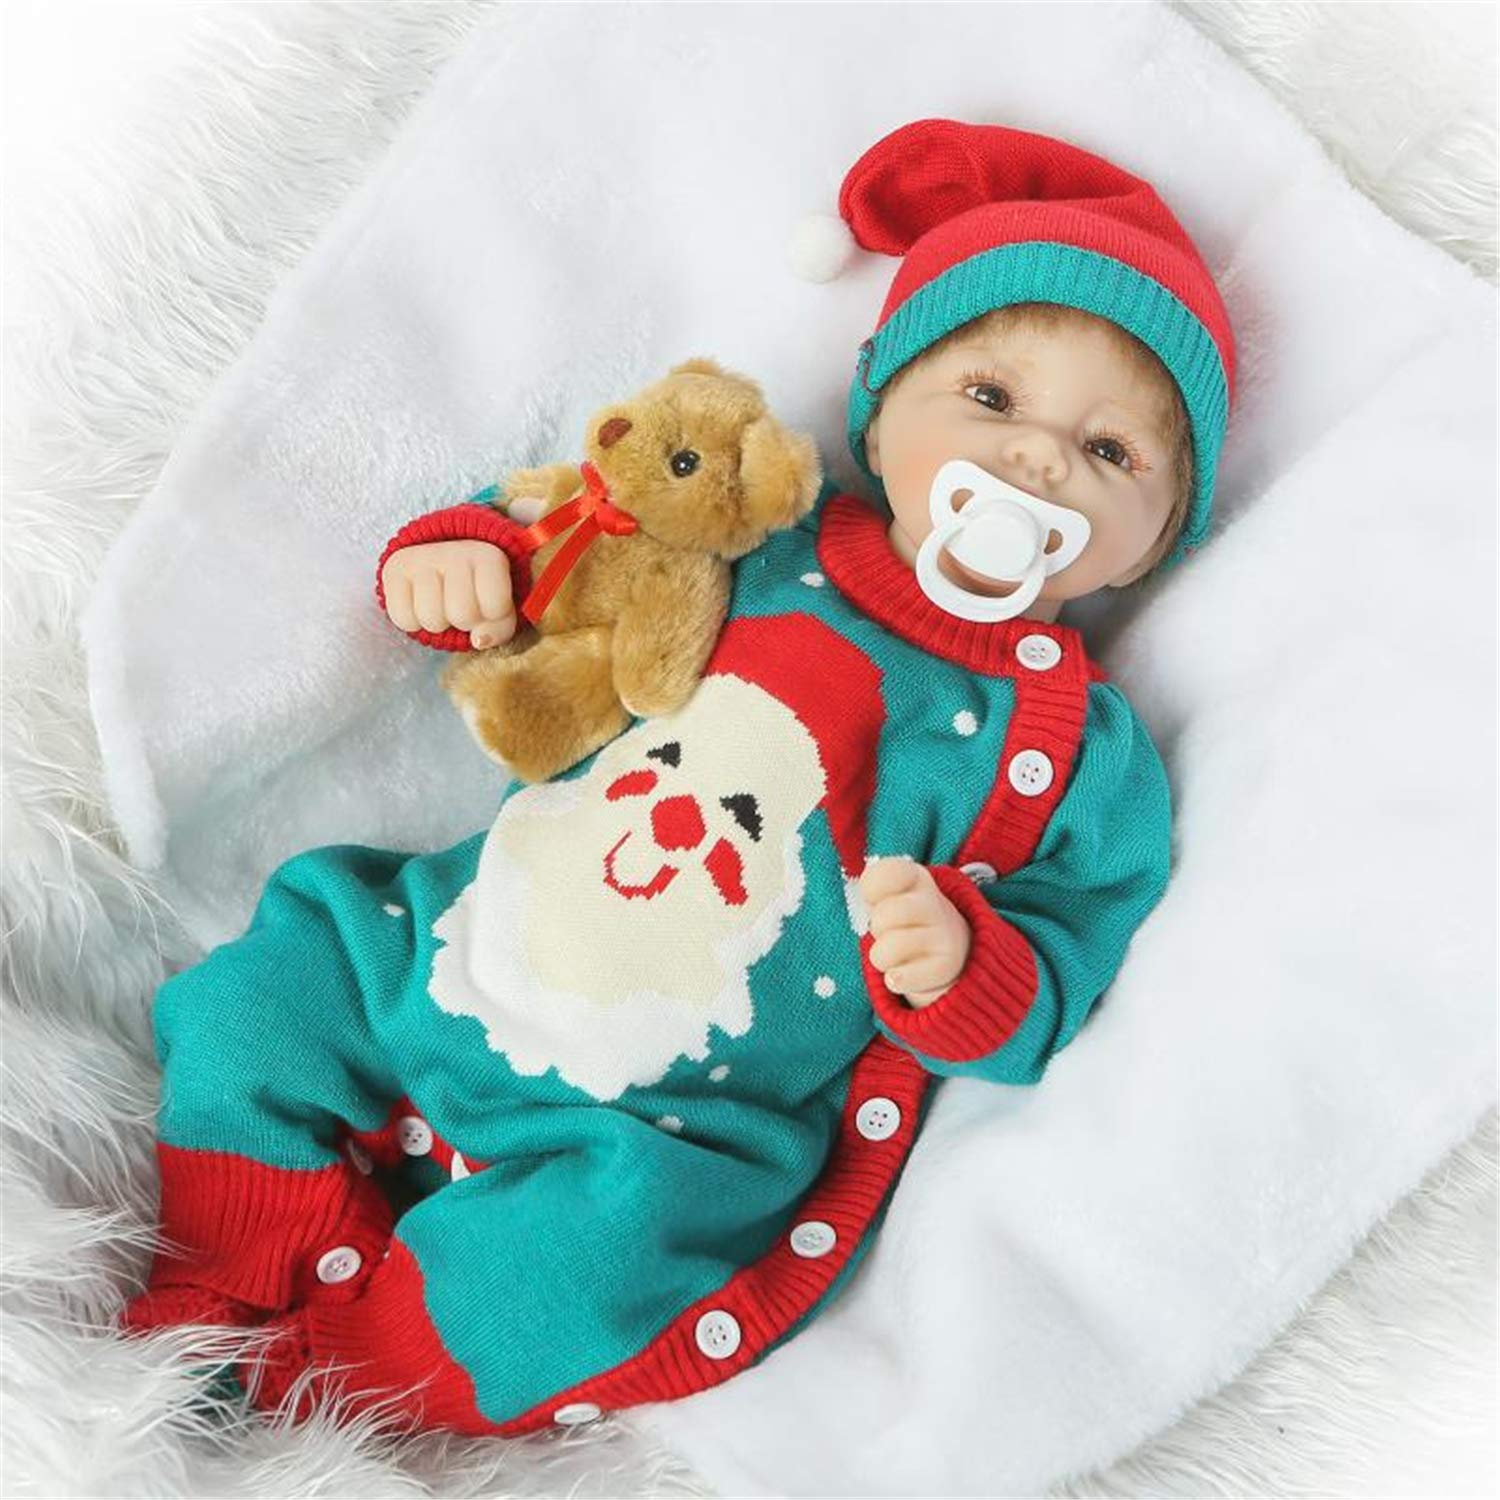 Zero Pam Lifelike Reborn Baby Girl Doll 22 inch 55 cm Realistic Boy Dolls for Kids Real life baby doll with Accessories Christmas Baby